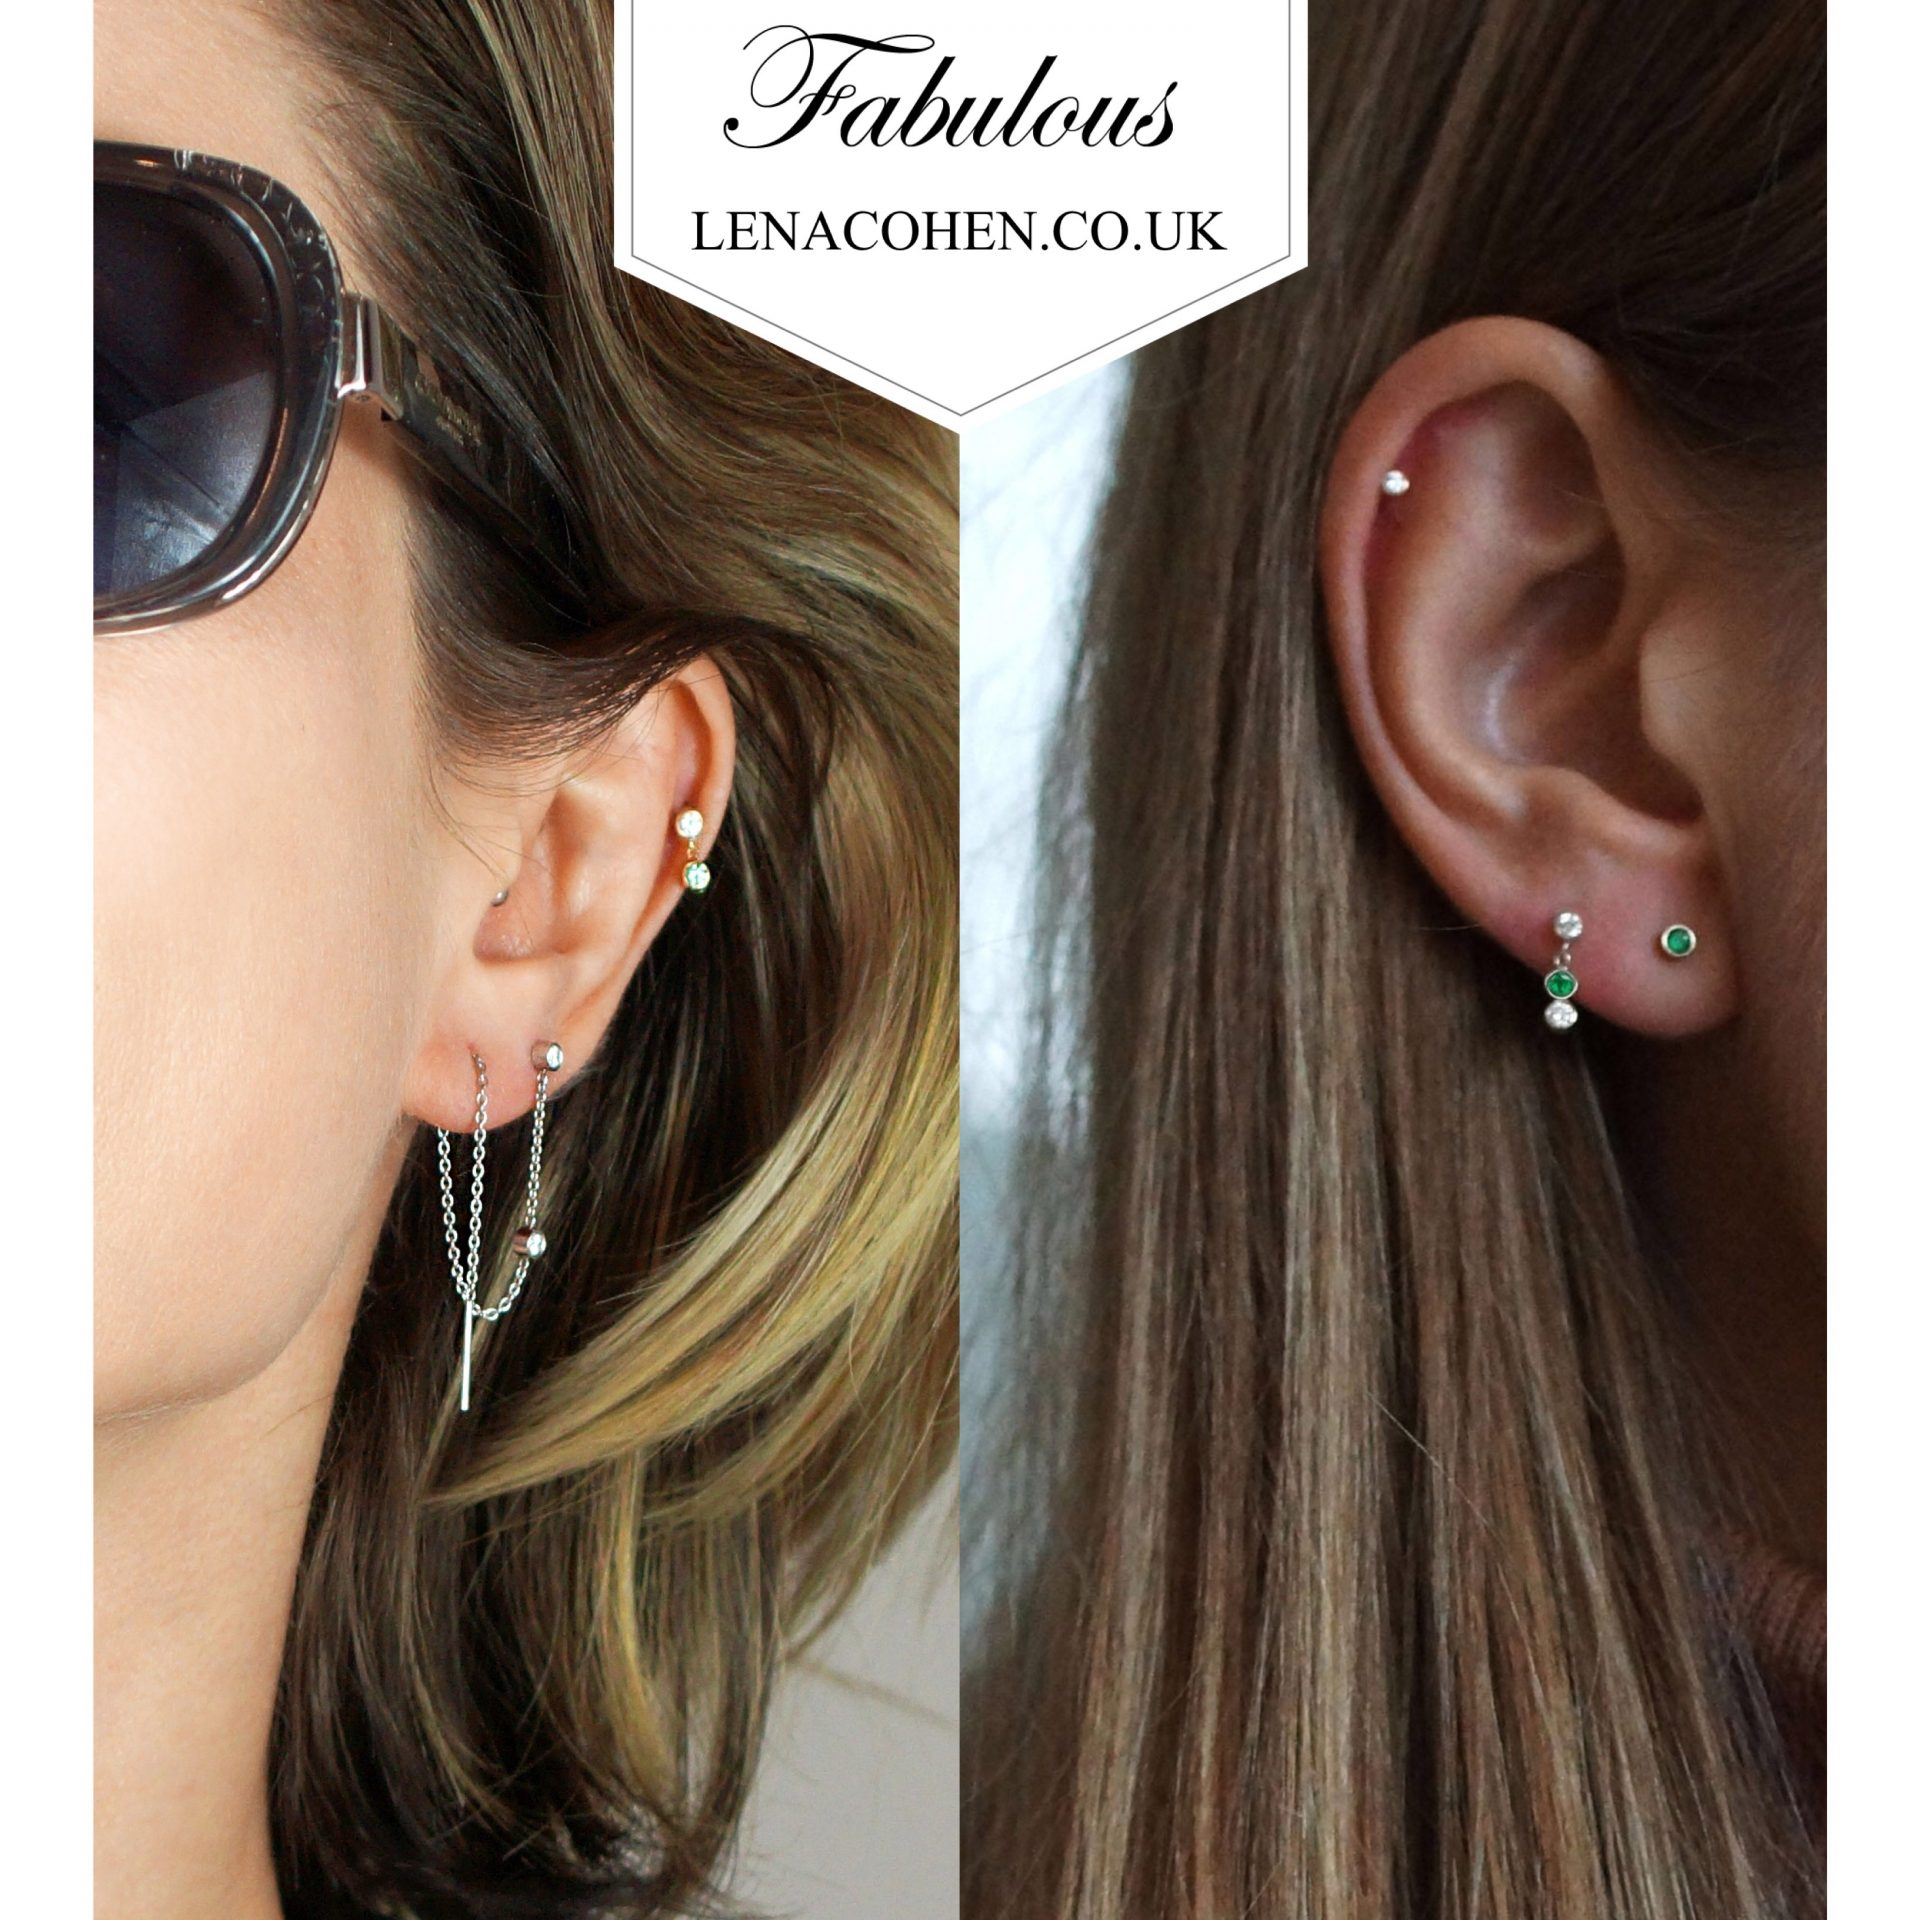 fashionistas find pull through earrings very comfortable to wear